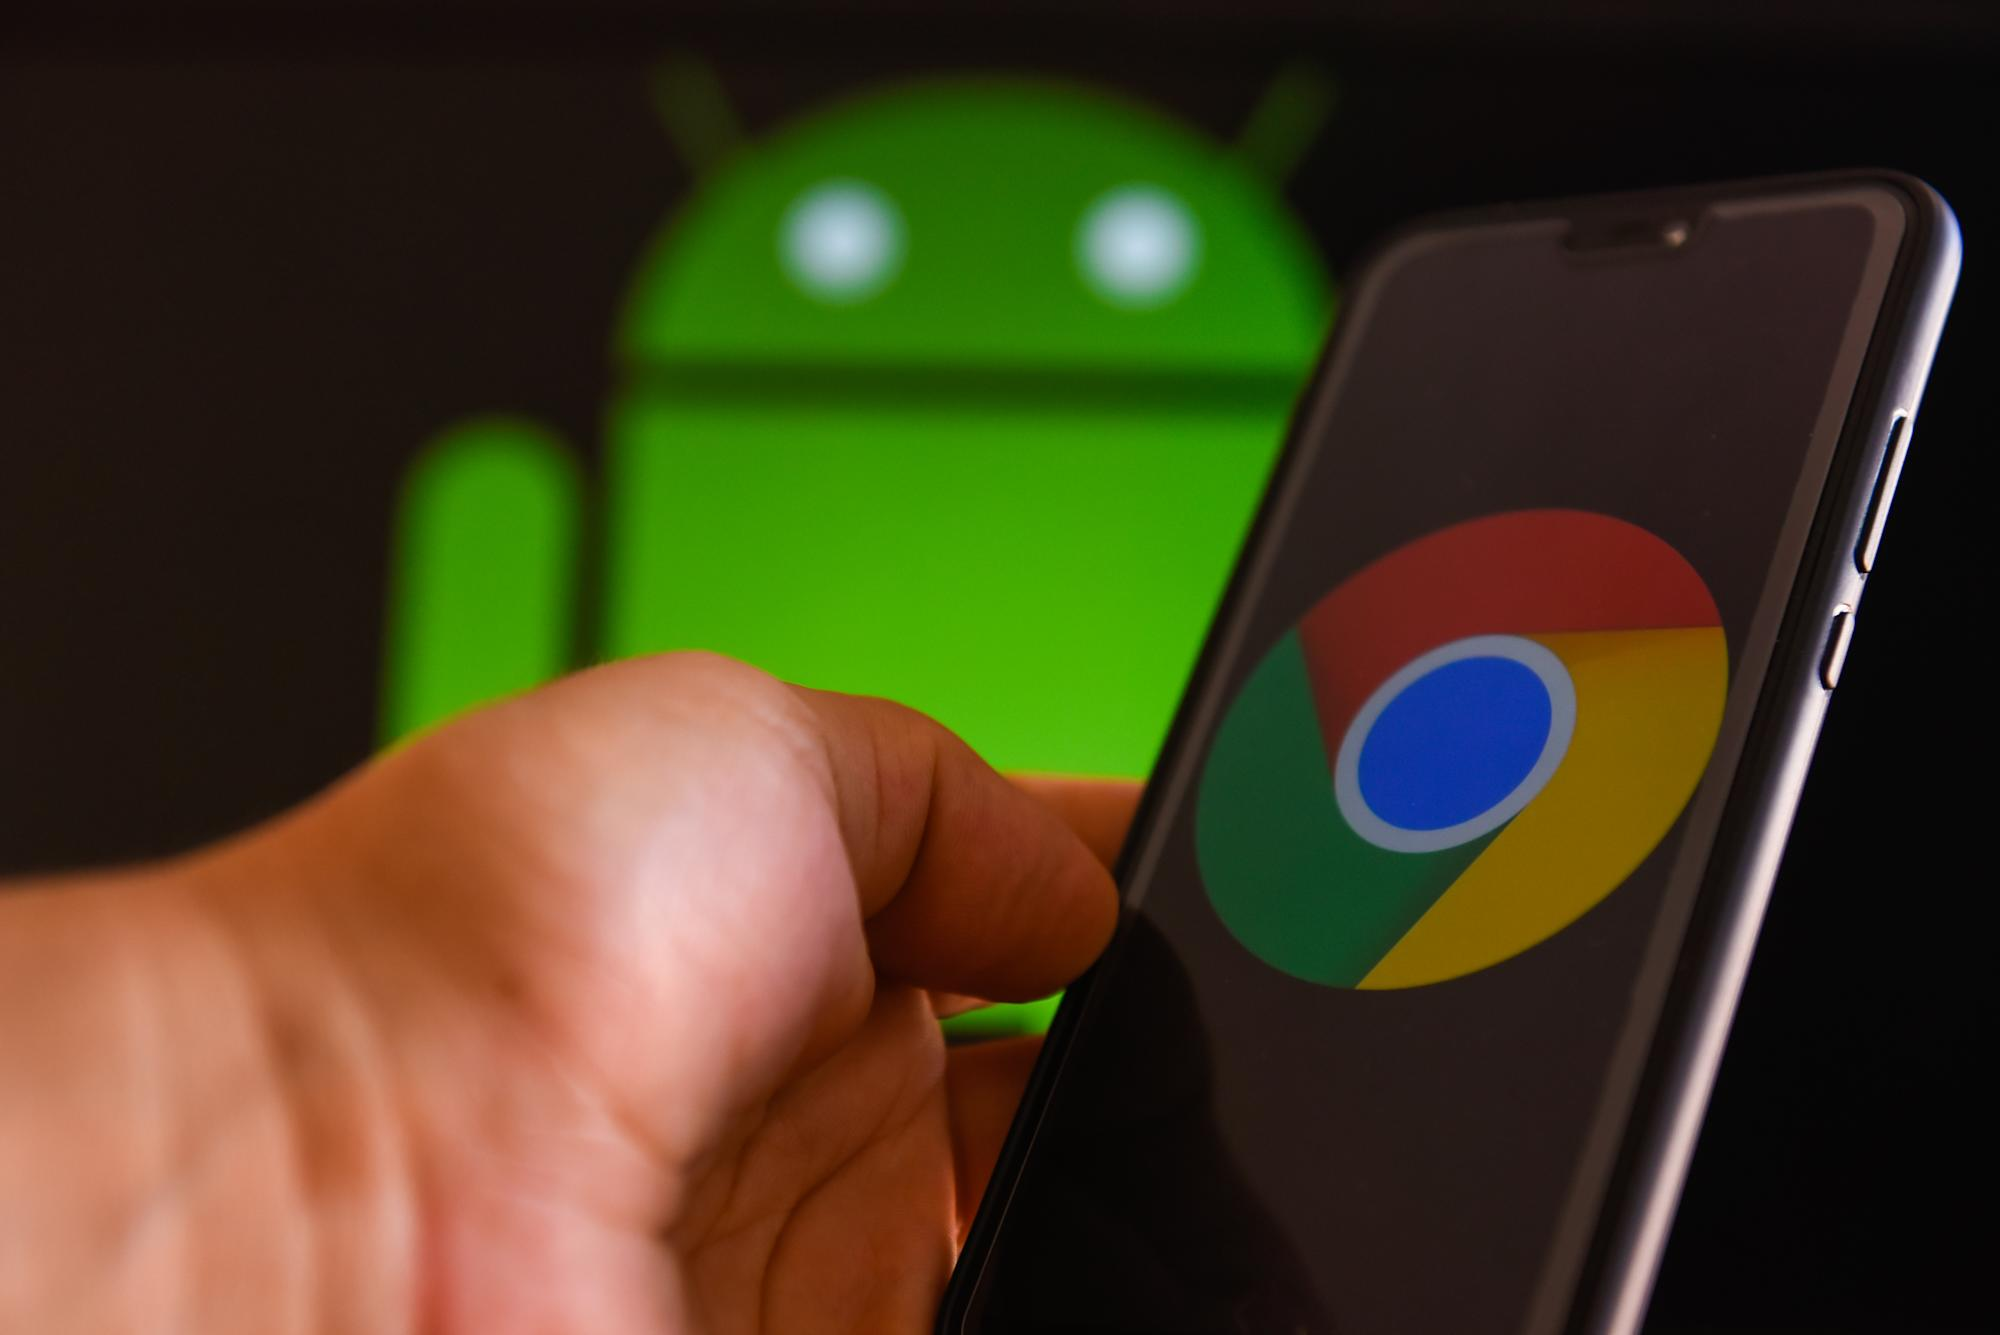 You would now be able to review pages in Chrome for Android